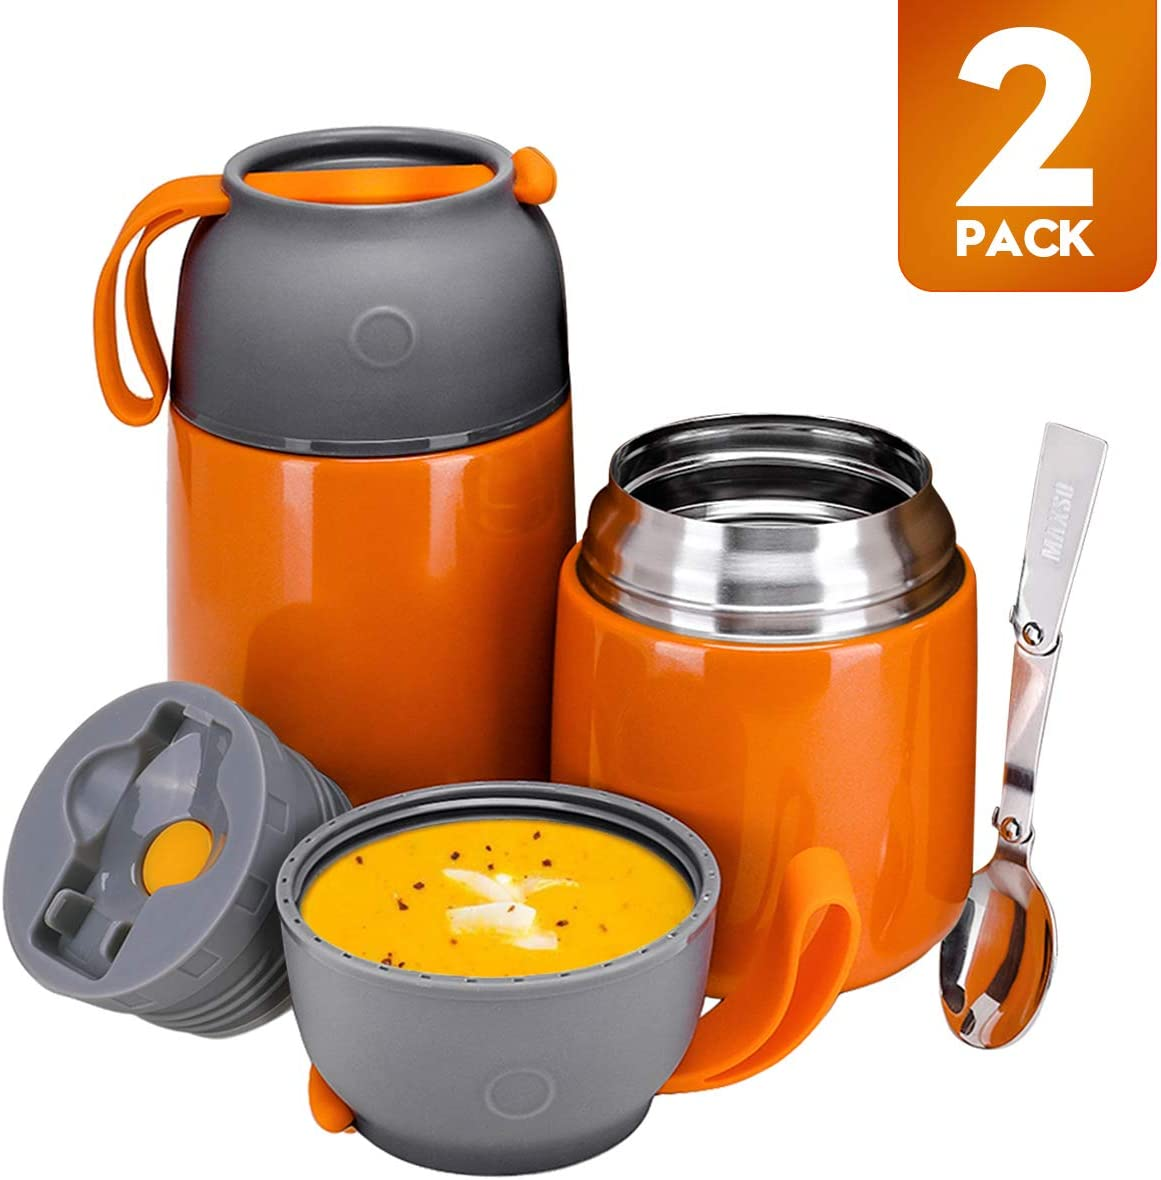 Vacuum Insulated Thermos Food Jar Hot Food Containers for Lunch,2 Pack Soup Thermos for Kids Adult,24 oz & 17 oz Stainless Steel Flask Containers Hot Cold